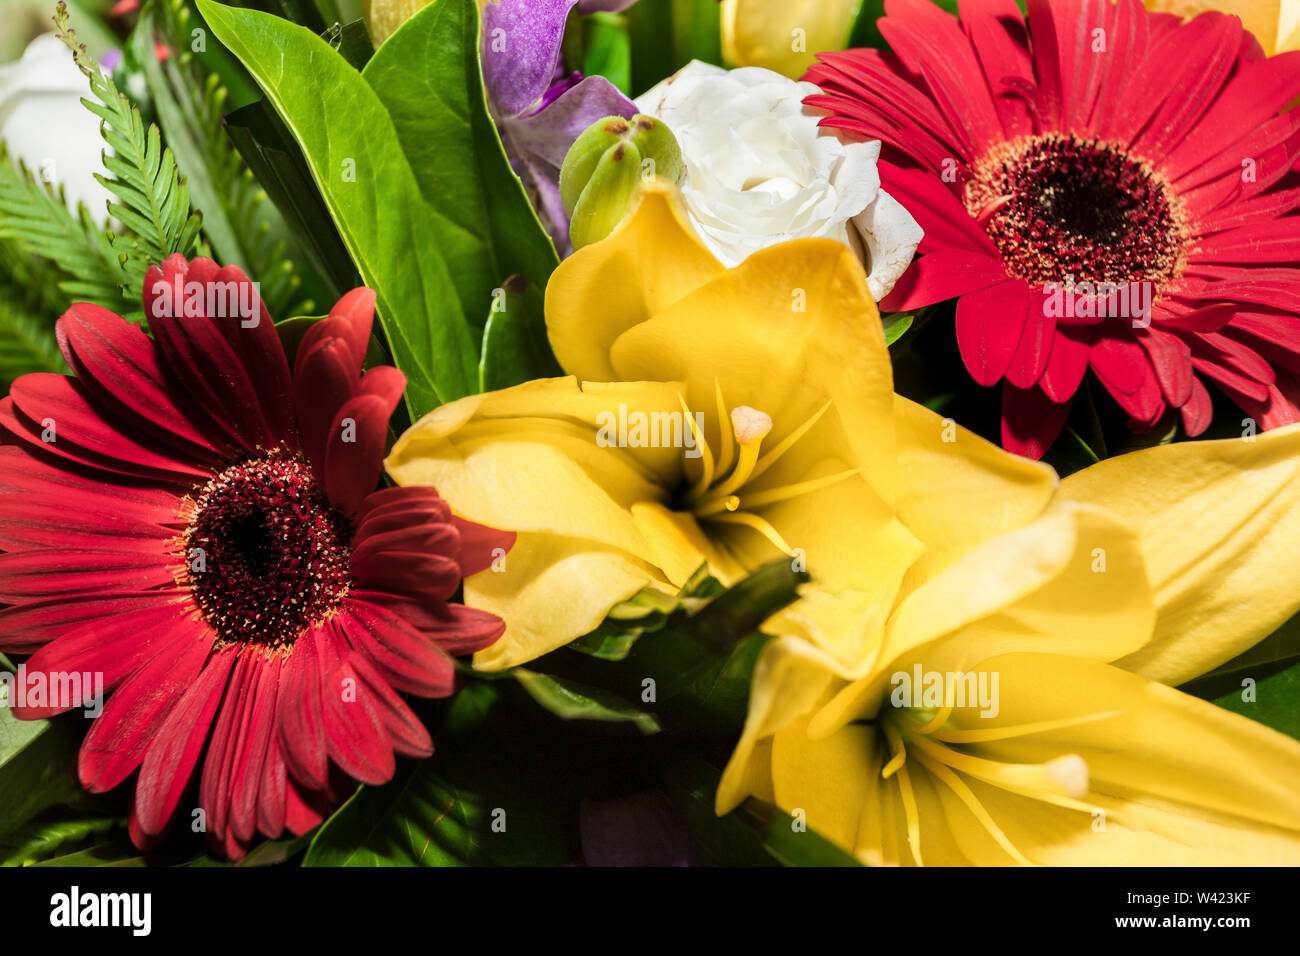 Yellow lilies and red Daisies flowers together in a bunch of  gifts in a fancy gift shop - Stock Image